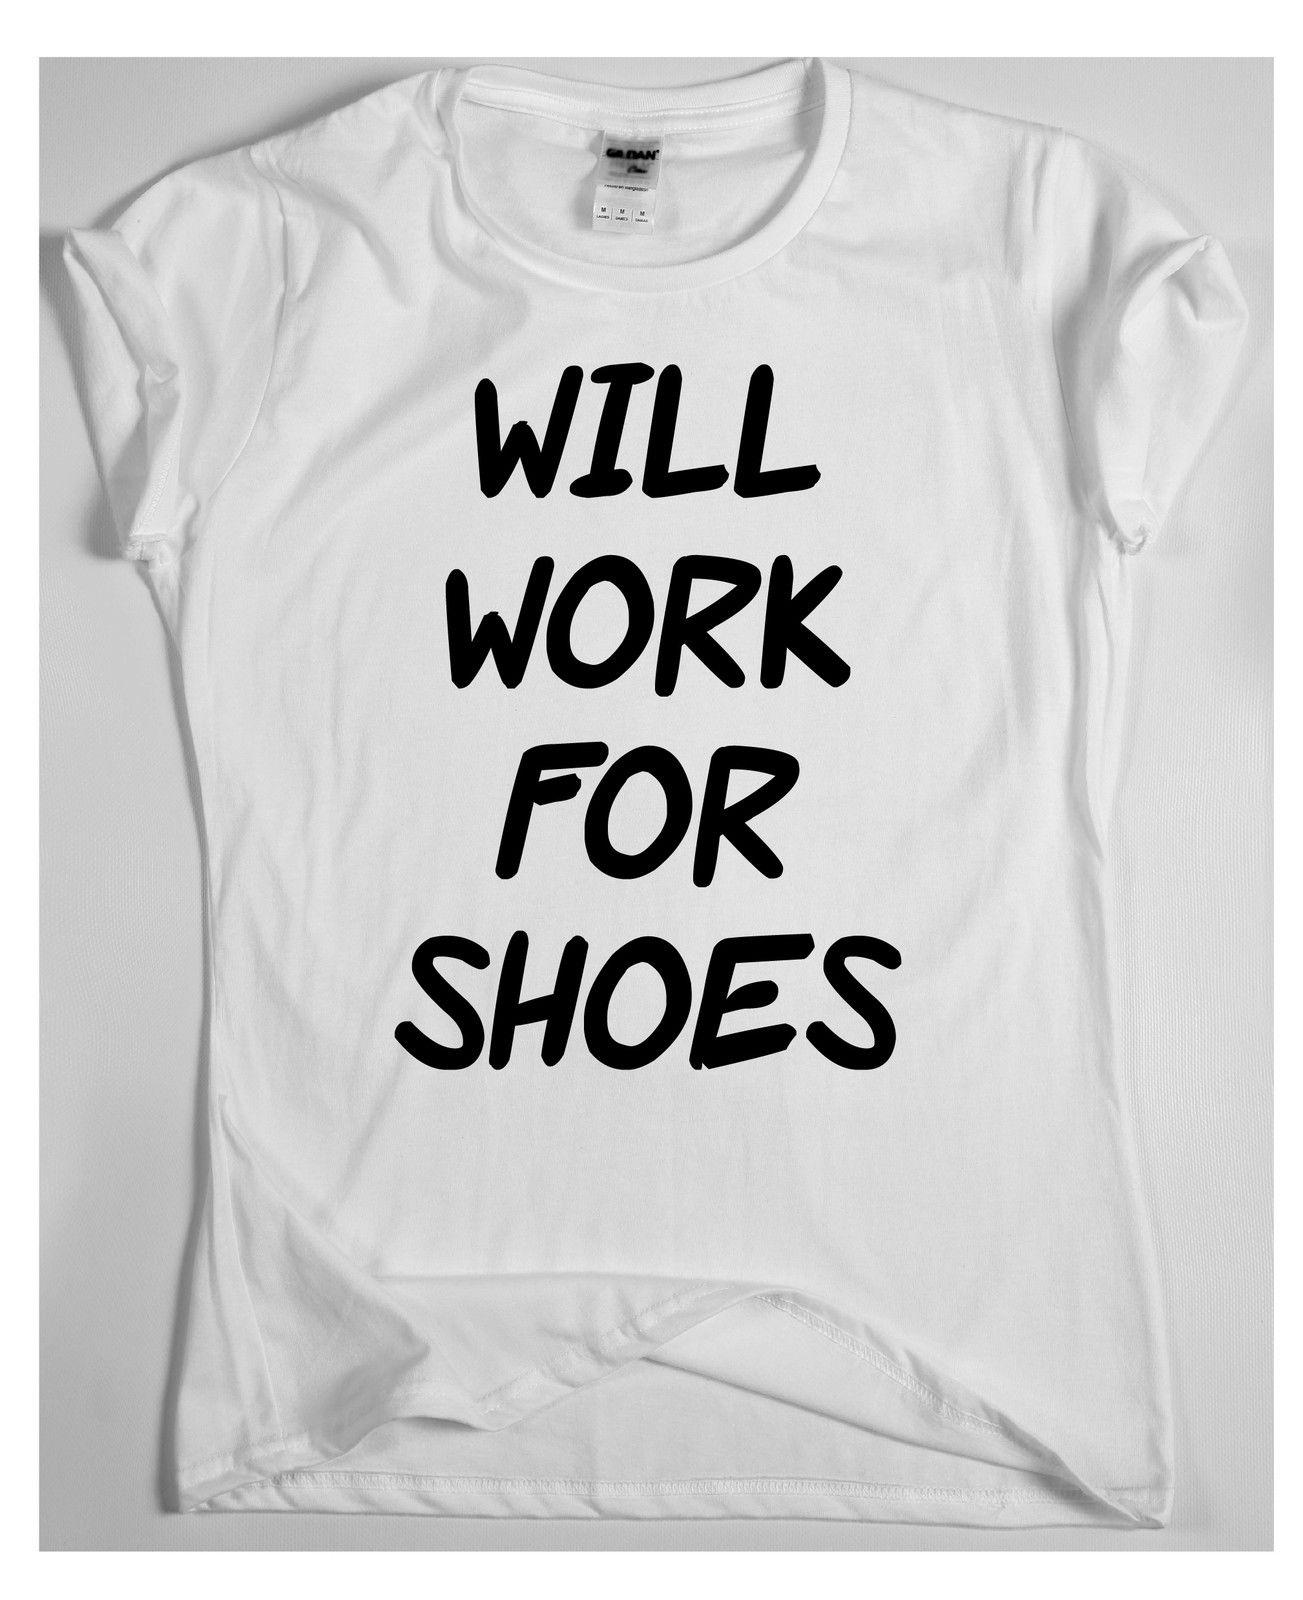 Funny t shirts tops rude slogan tee joke shirt humour will work for shoes  Style Round Style tshirt Tees Custom Jersey t shirt